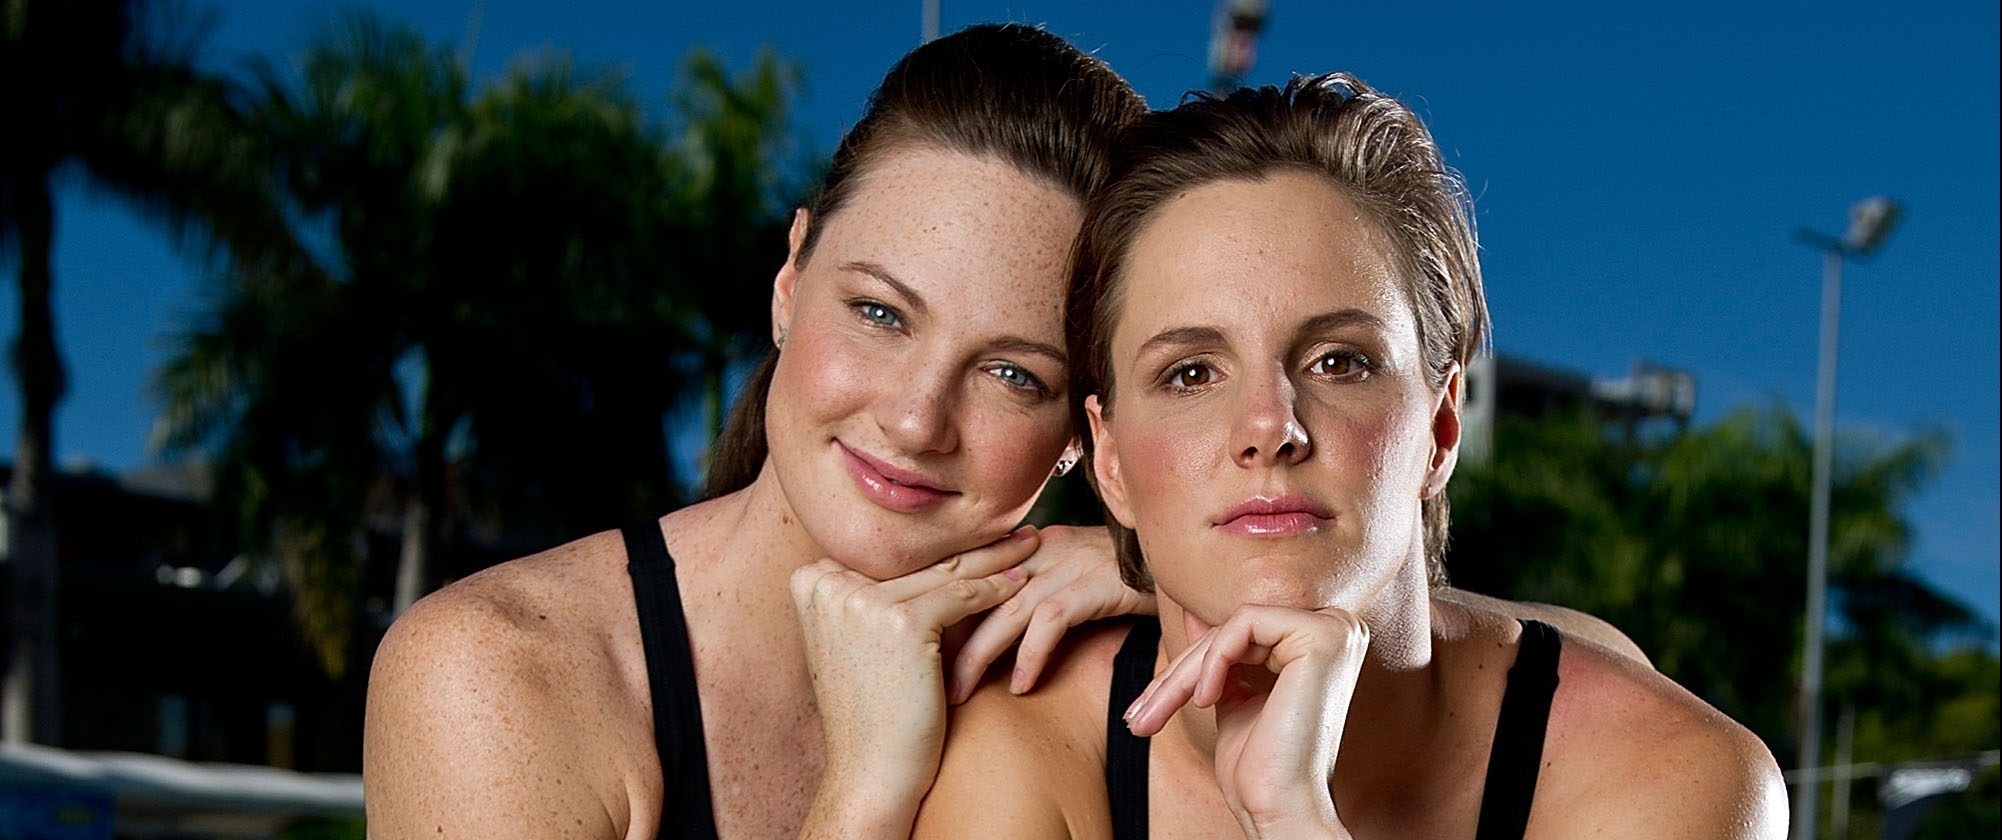 BRISBANE, QUEENSLAND - JUNE 02:  In this handout image provided by Uncle Tobys, (L-R) Cate and Bronte Campbell pose during a portrait session at the Valley Pool on June 2, 2014 in Brisbane, Australia.  (Photo by Matt Roberts/Uncle Tobys via Getty Images)